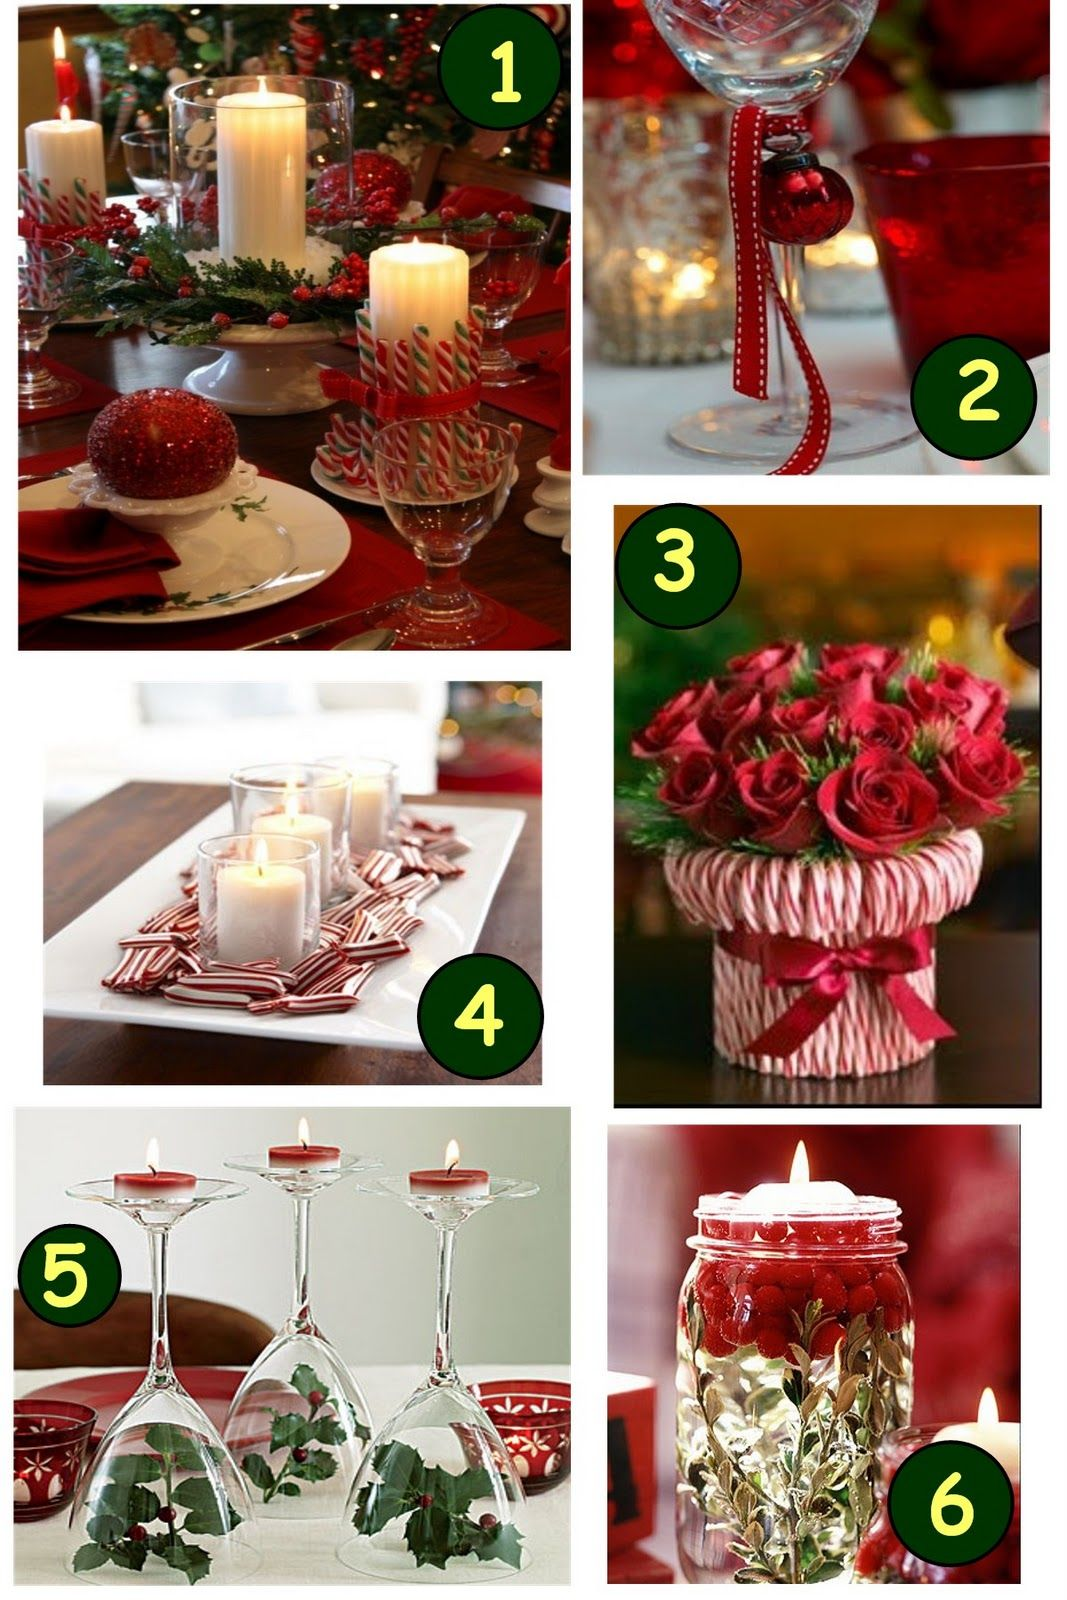 Christmas table decorations red and gold - Amazing Christmas Dining Room Decor Ideas With Furniture Living Room Entrancing Beautiful White And Red Christmas Dinner Table Decorations With Candle And